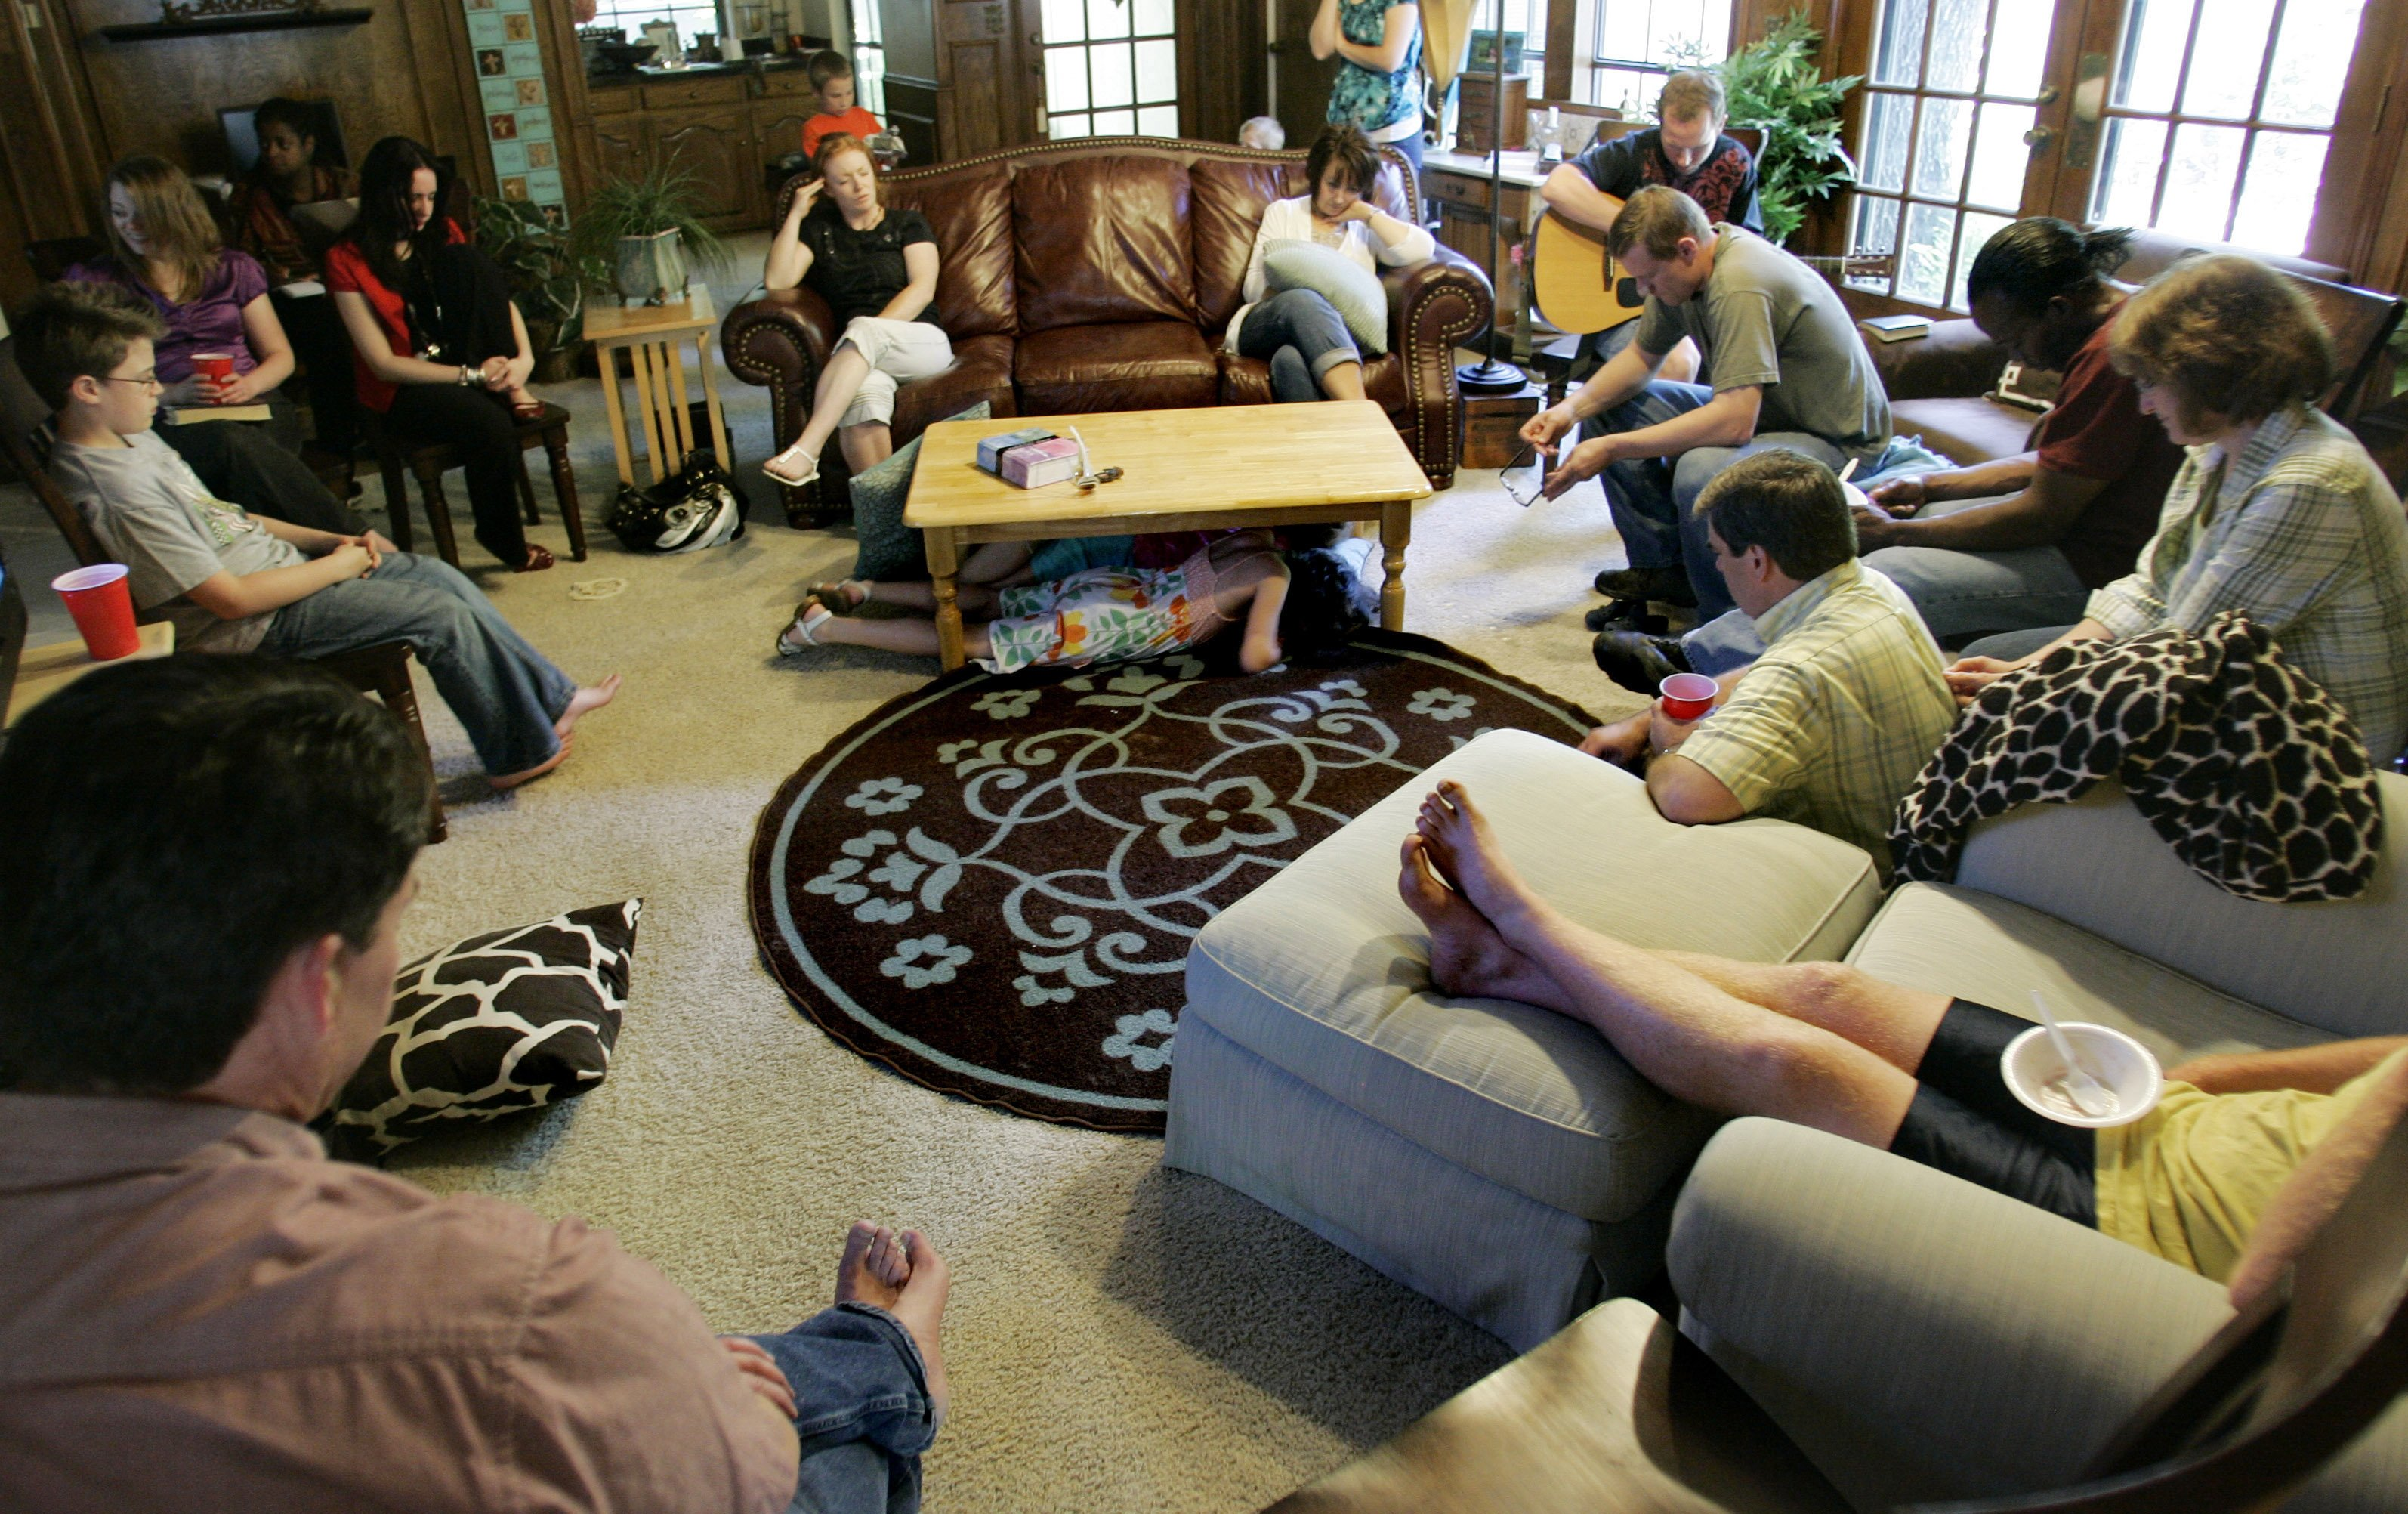 The Living Room Church trend builds for house churches as participants seek cozy setting